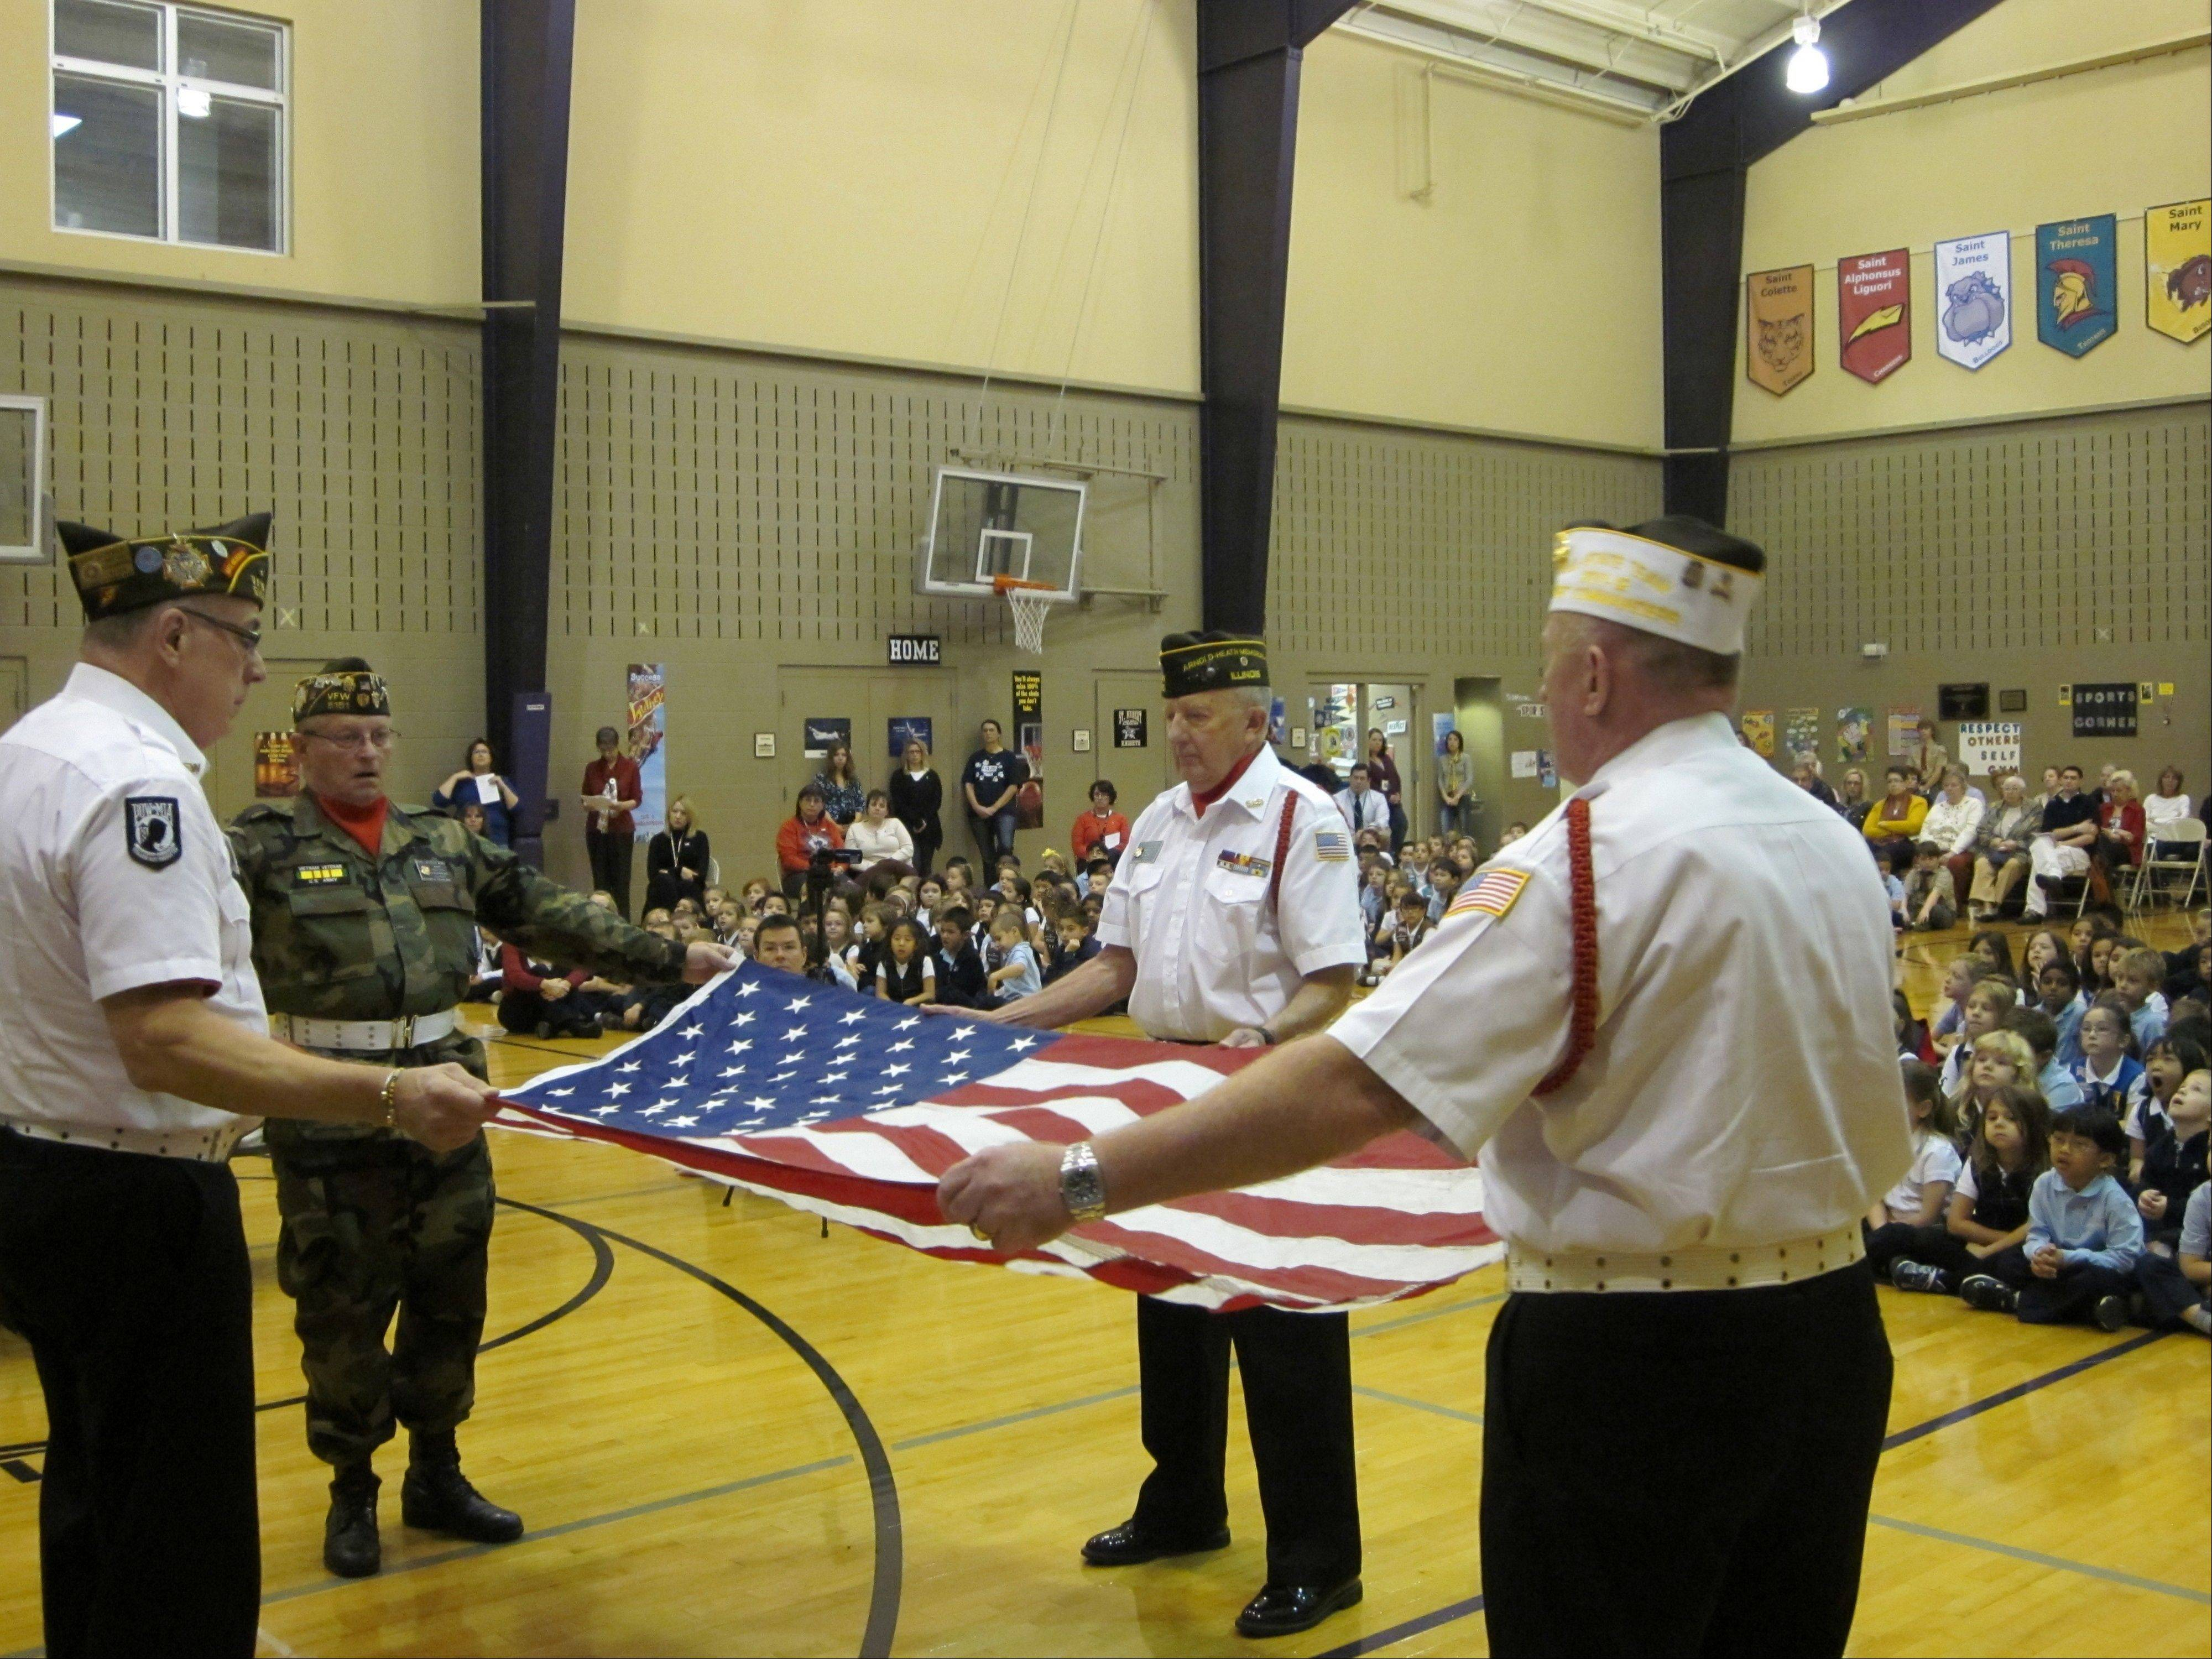 Members of VFW Post 5151 demonstrate the folding of the American flag during a Veterans Day ceremony Friday at Saint Hubert Catholic School in Hoffman Estates.